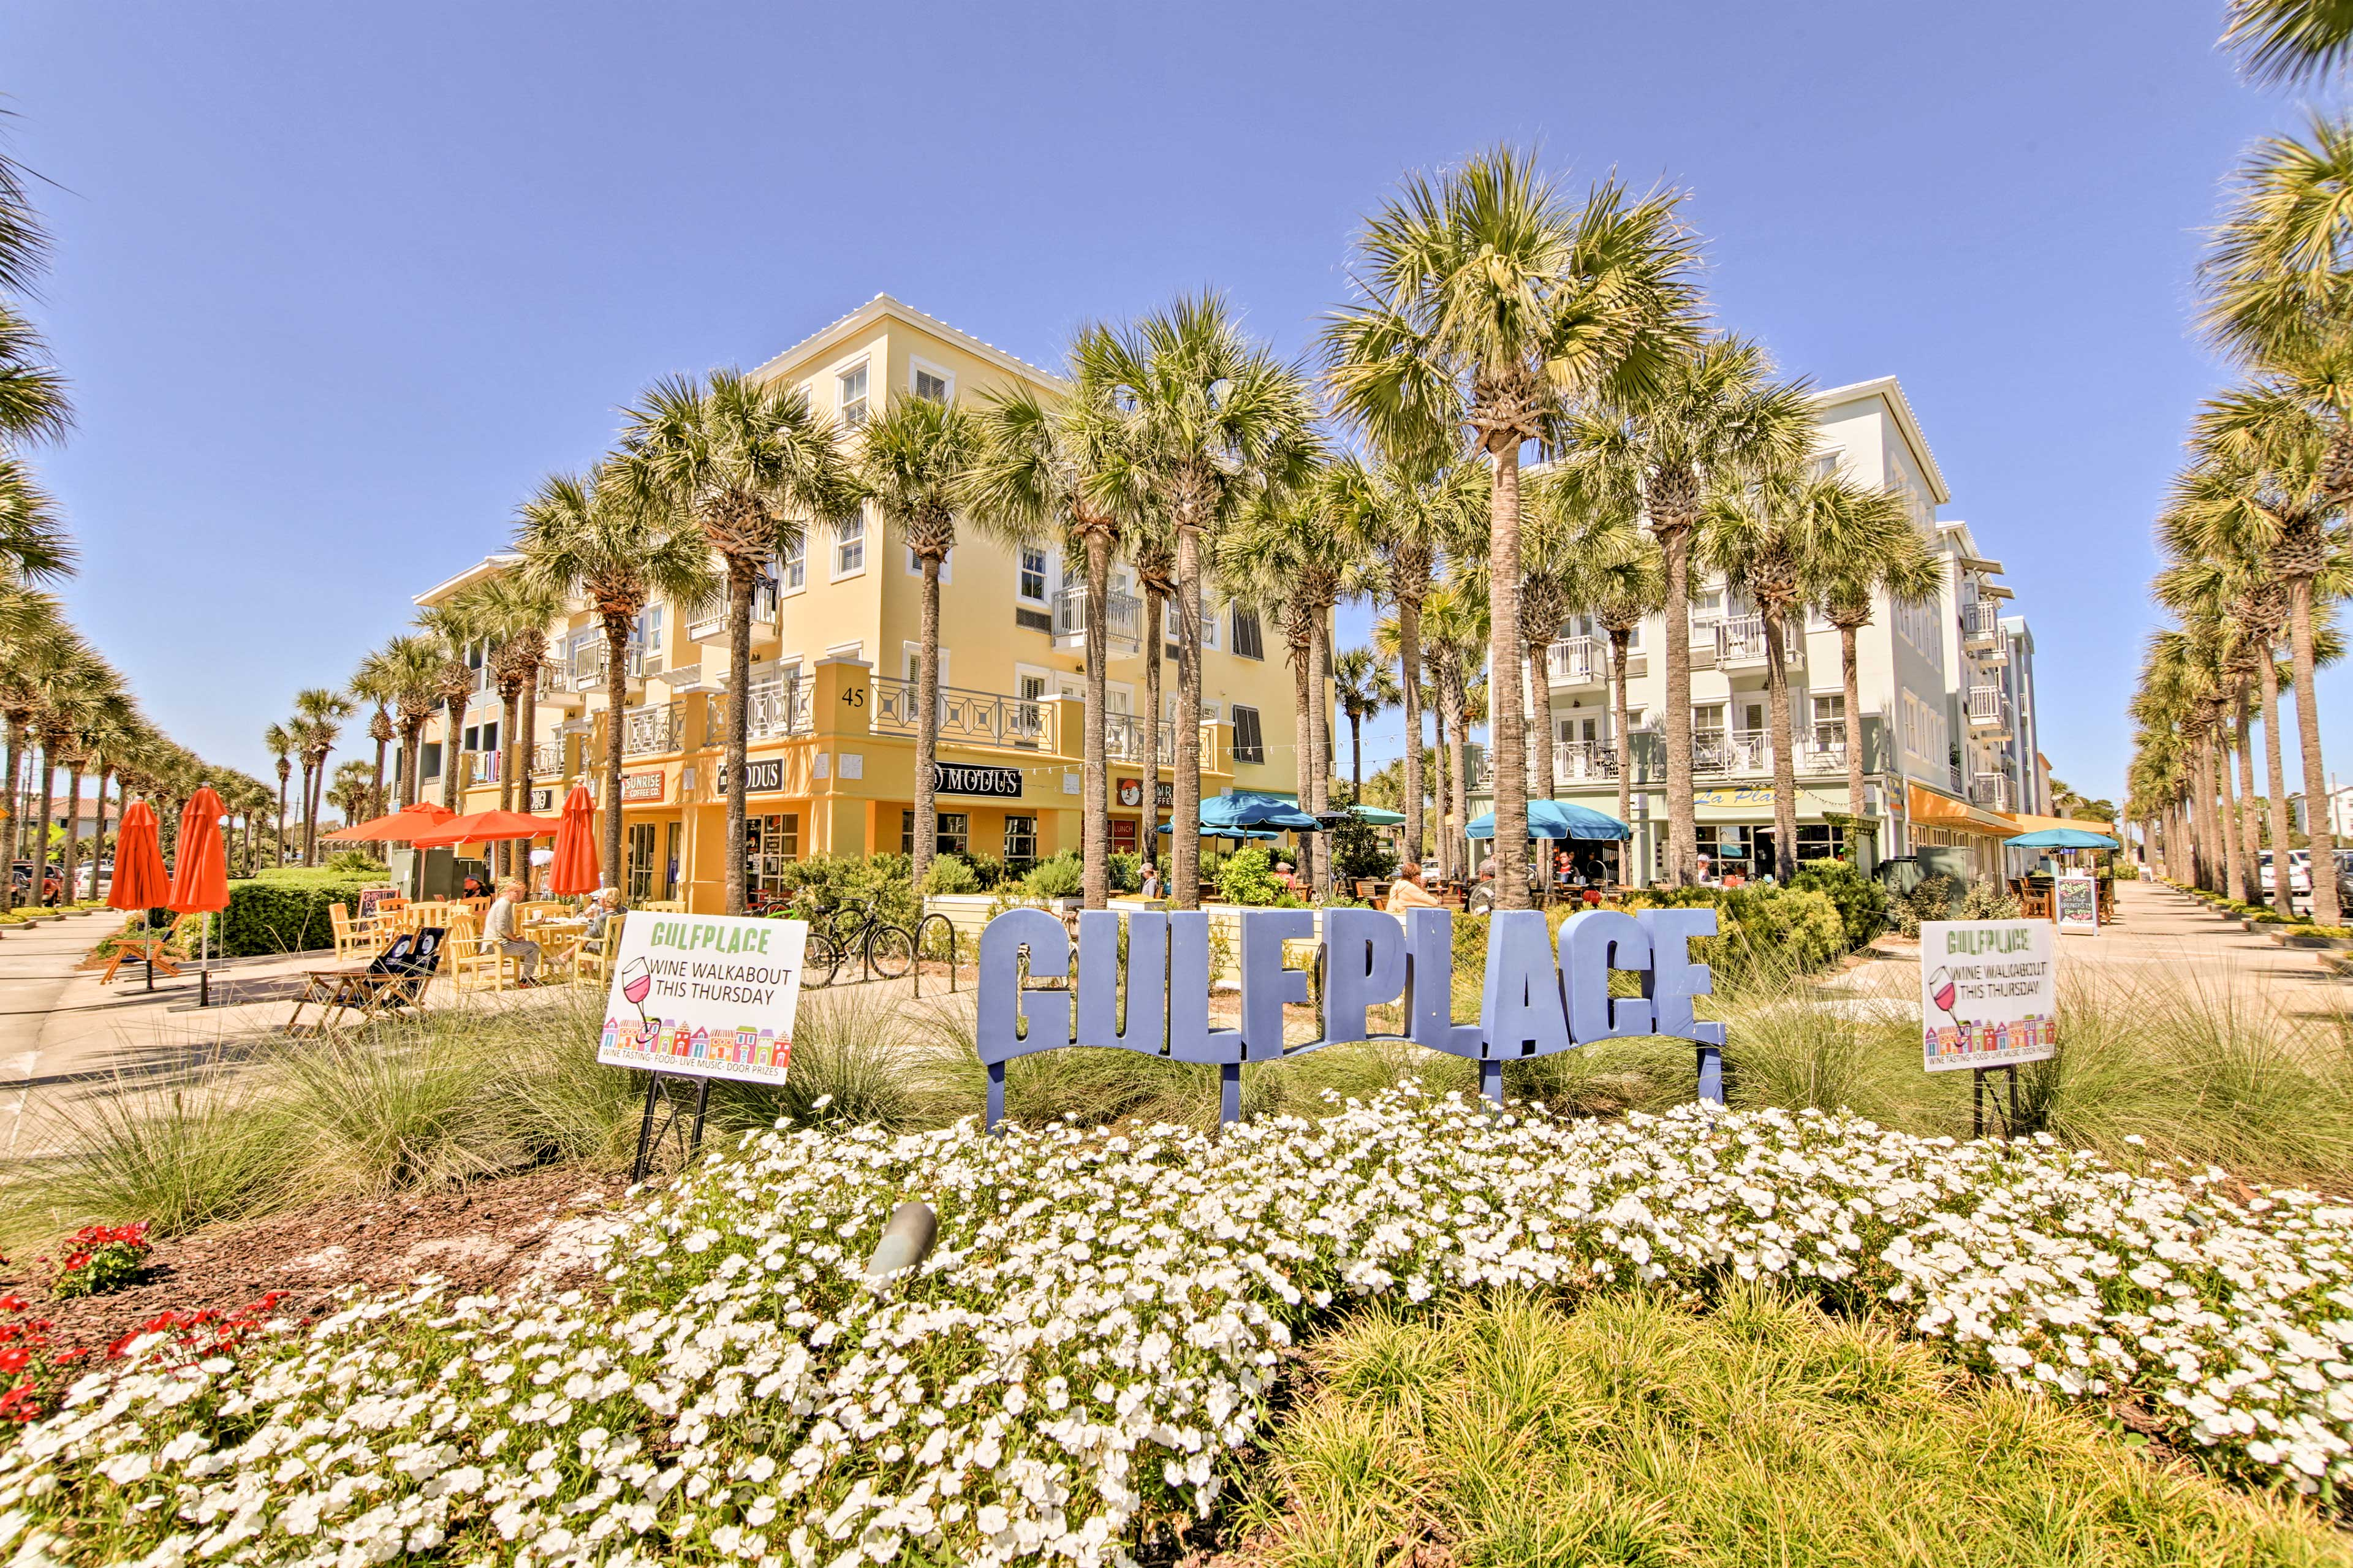 You'll find plenty of great restaurants on your 5-minute walk to the beach!